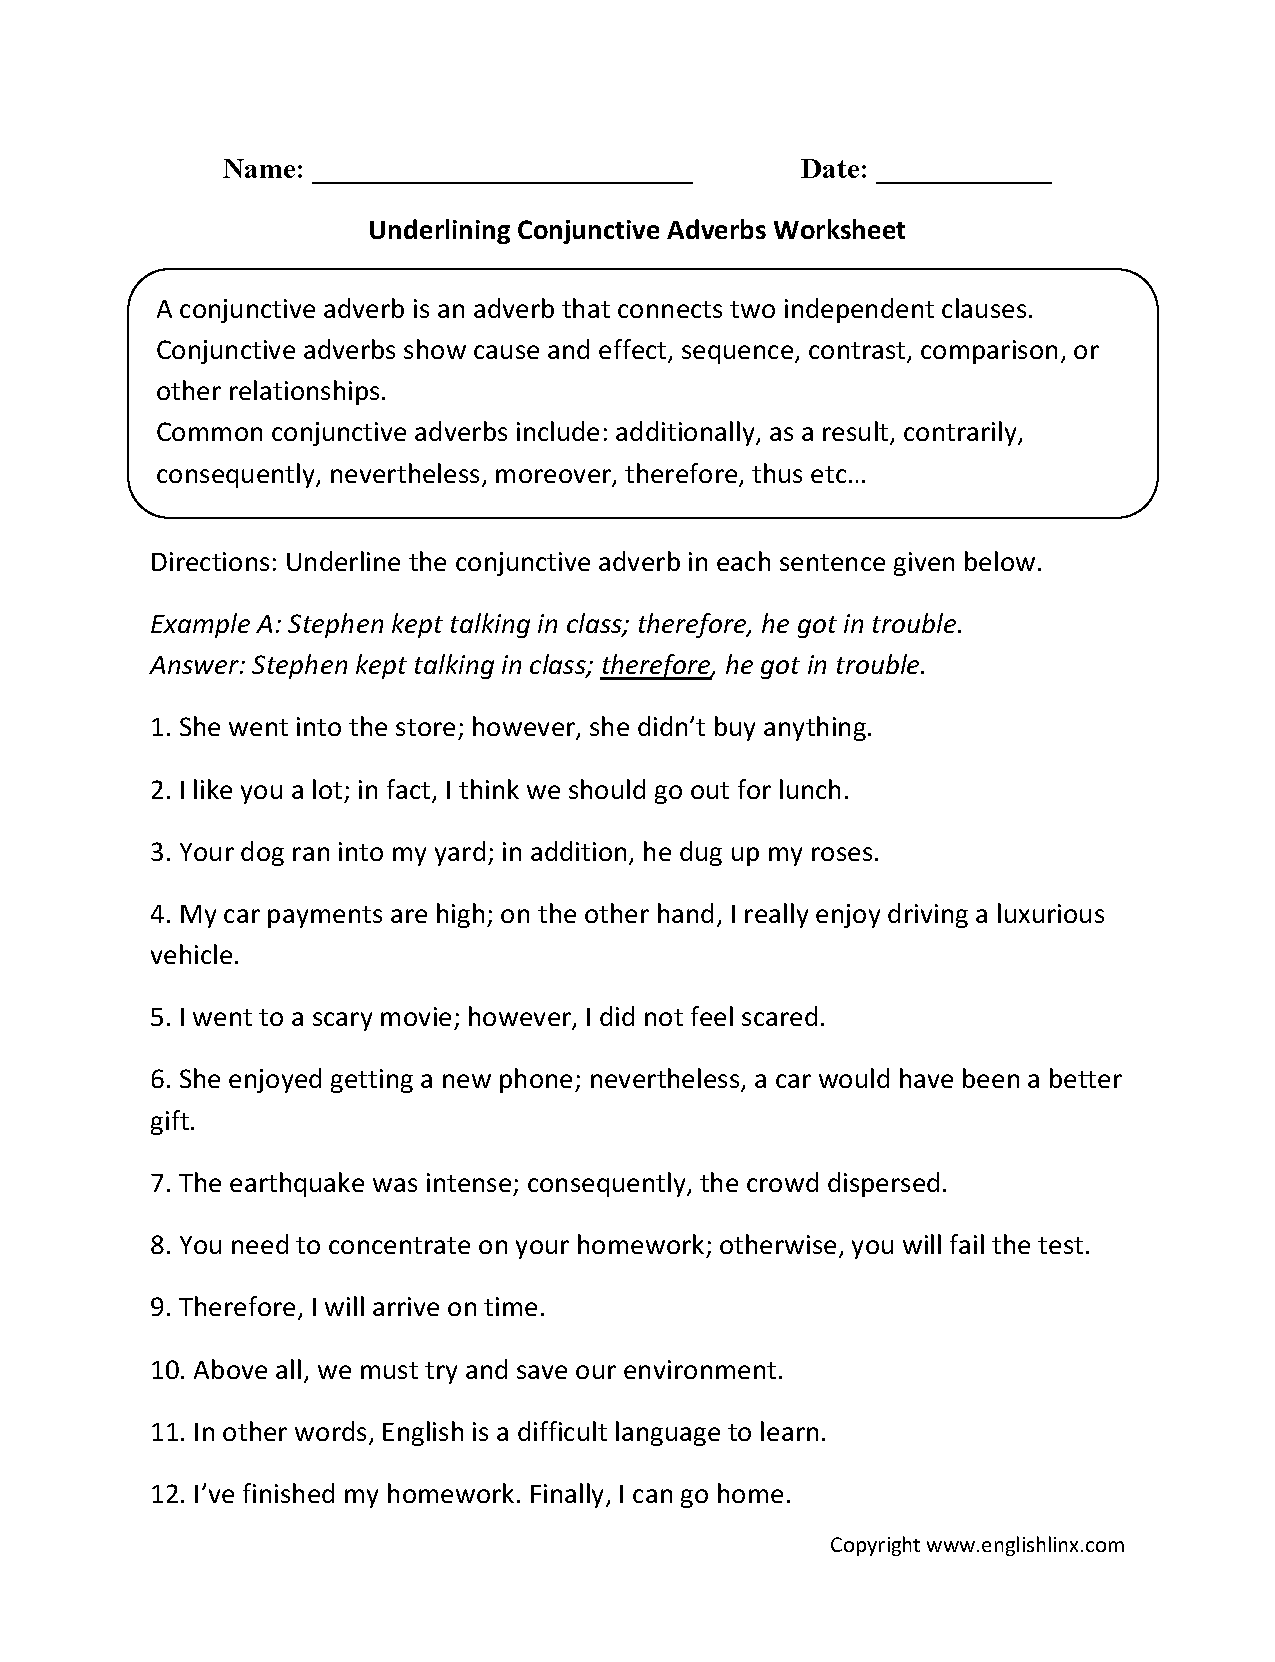 Aldiablosus  Marvelous Englishlinxcom  Conjunctions Worksheets With Outstanding Worksheet With Archaic Reason For The Seasons Worksheet Also Map Of The United States Worksheet In Addition Nd Grade Science Worksheets Free And Connect The Dots Worksheets For Adults As Well As Converting Length Worksheets Additionally Context Clues Worksheets For Nd Grade From Englishlinxcom With Aldiablosus  Outstanding Englishlinxcom  Conjunctions Worksheets With Archaic Worksheet And Marvelous Reason For The Seasons Worksheet Also Map Of The United States Worksheet In Addition Nd Grade Science Worksheets Free From Englishlinxcom